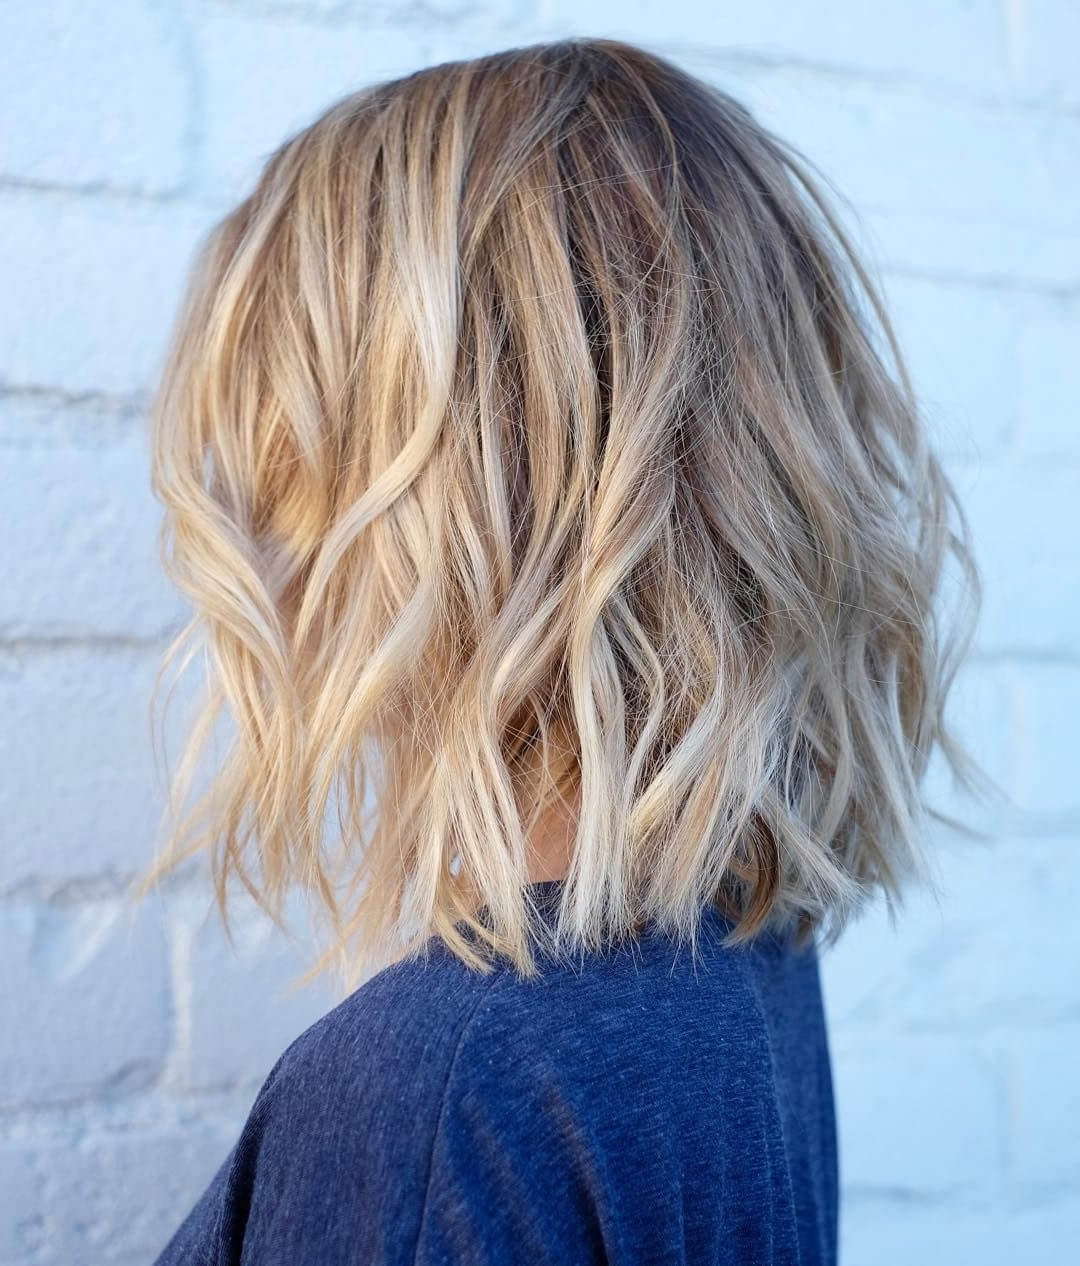 50 Fresh Short Blonde Hair Ideas To Update Your Style In 2018 Throughout Trendy Long Honey Blonde And Black Pixie Hairstyles (View 15 of 20)